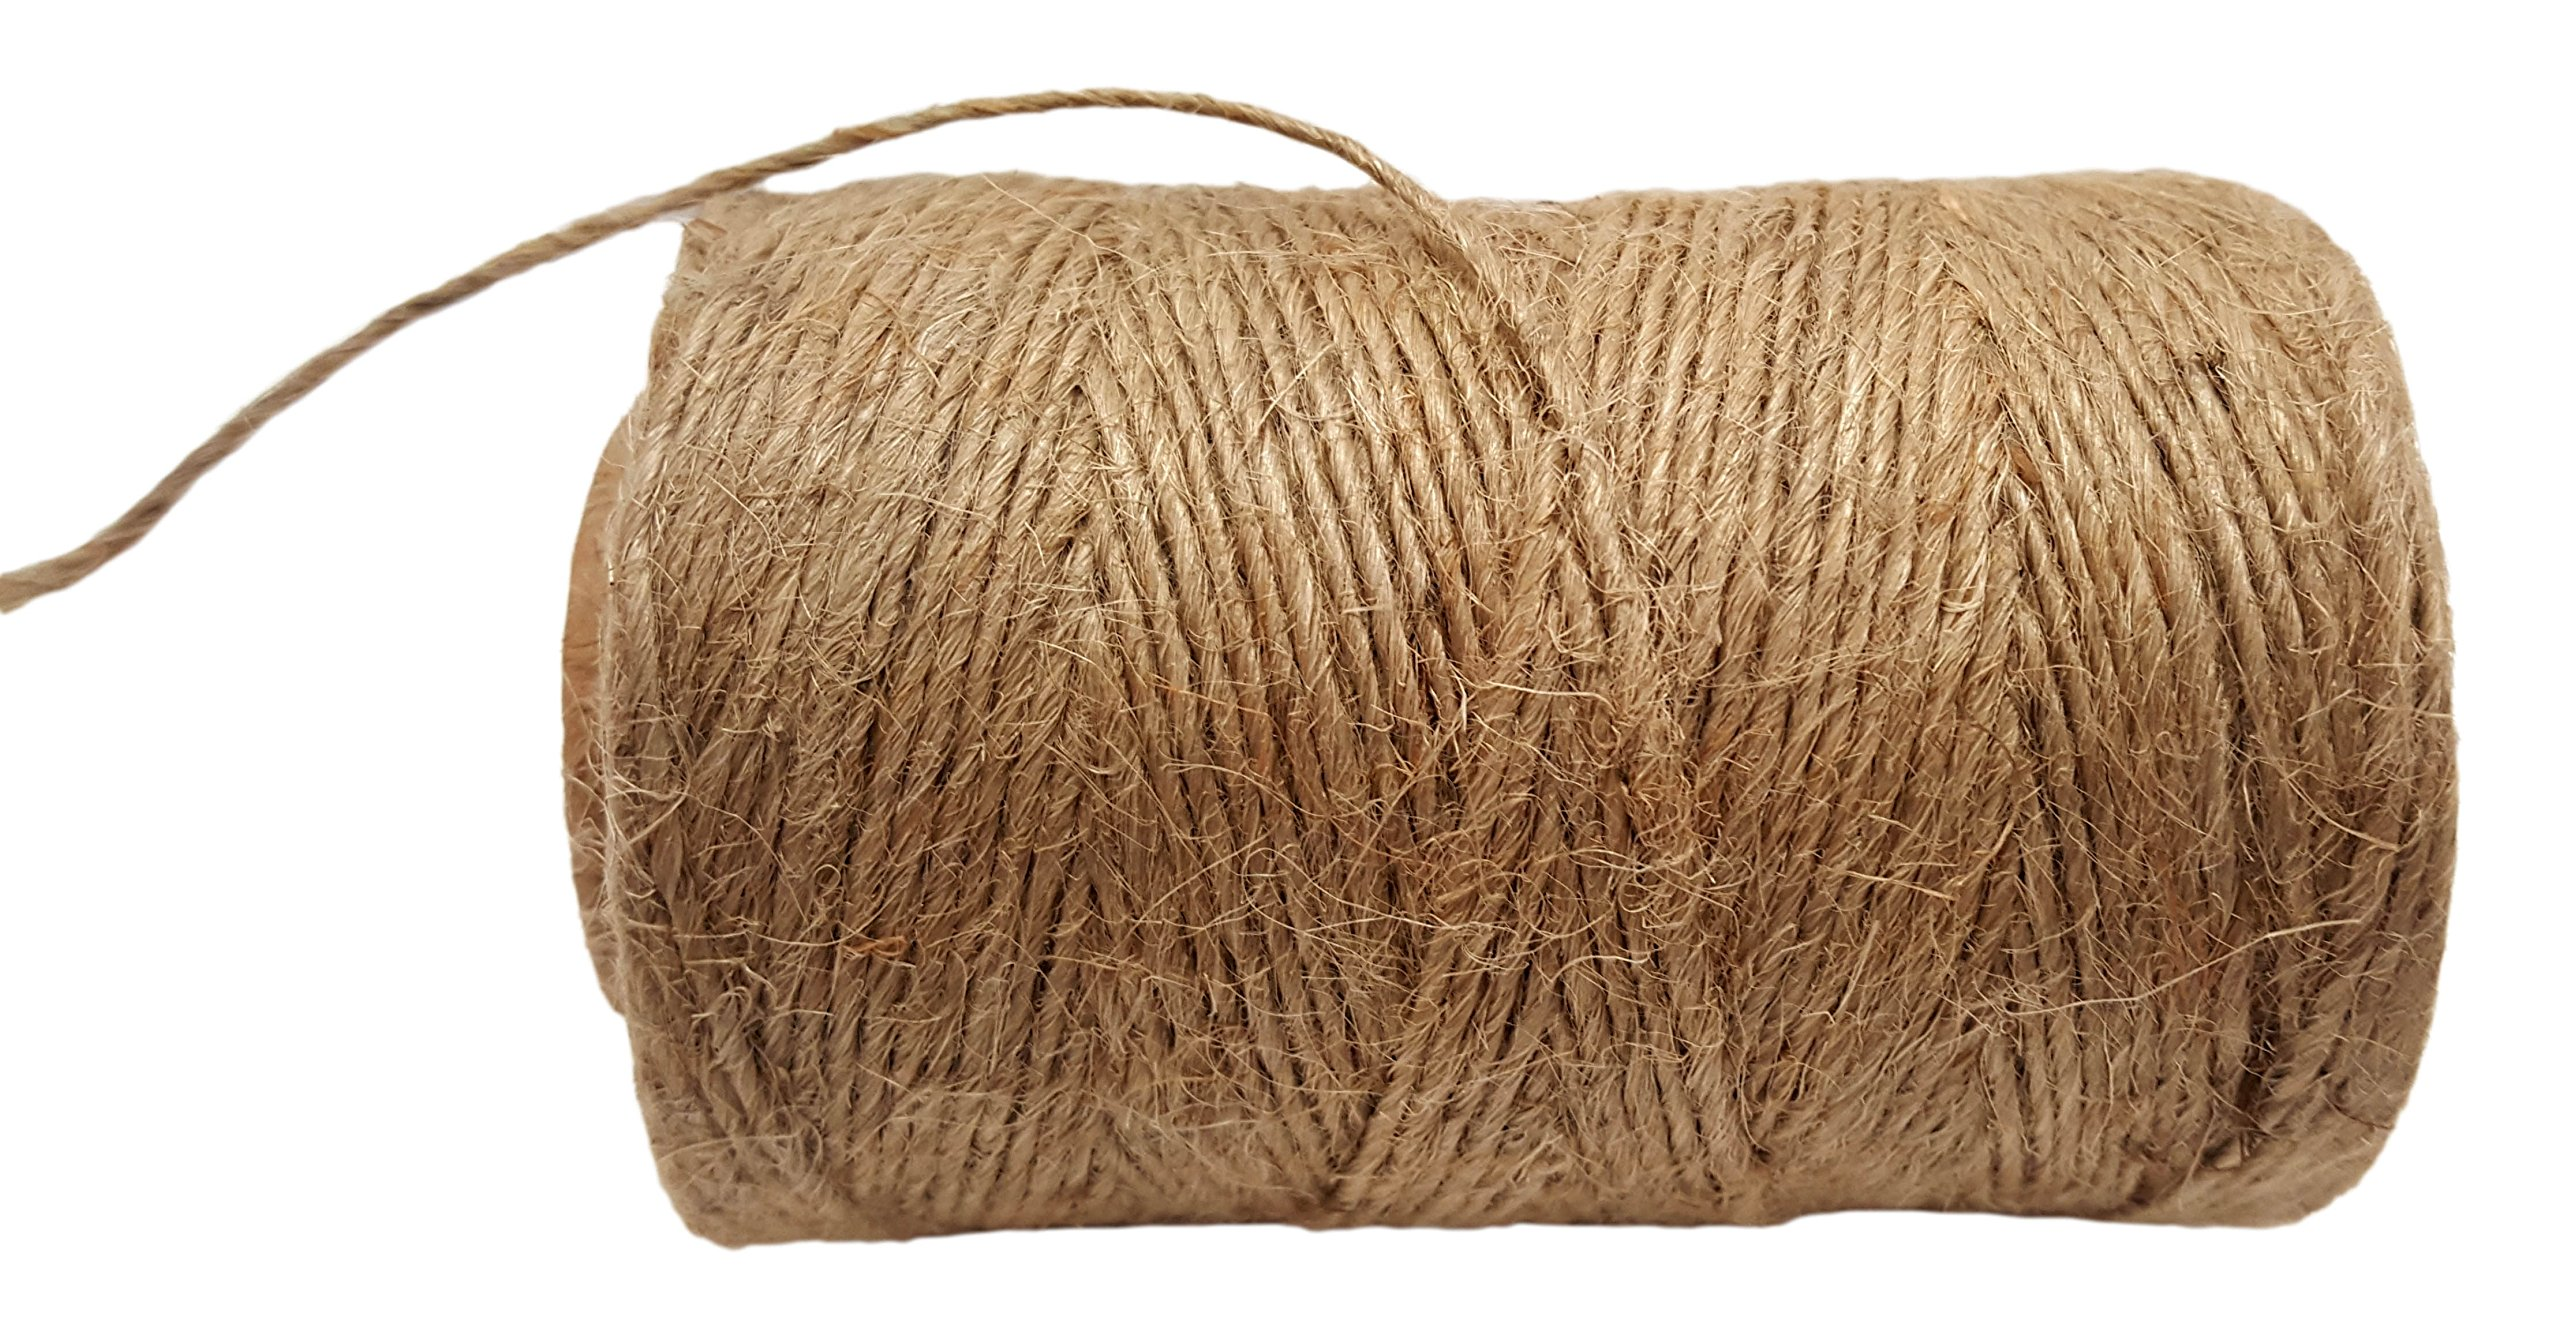 Black Duck Brand Set of 4 Spools of 100% Jute Garden All Purpose Twine! 300 feet per Spool! (4) by Black Duck Brand (Image #2)